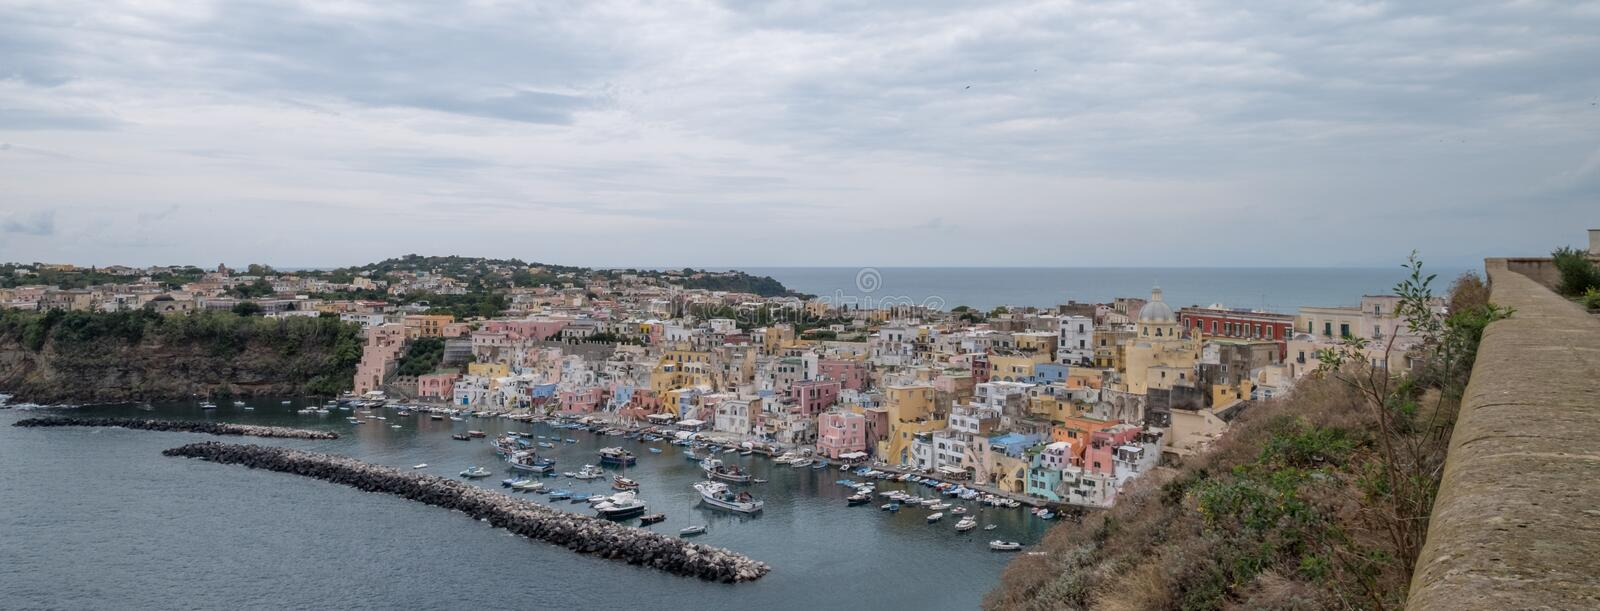 Panoramic photo of Marina Corricella, Italy, fishing village on the island of Procida with pastel coloured houses stock photography